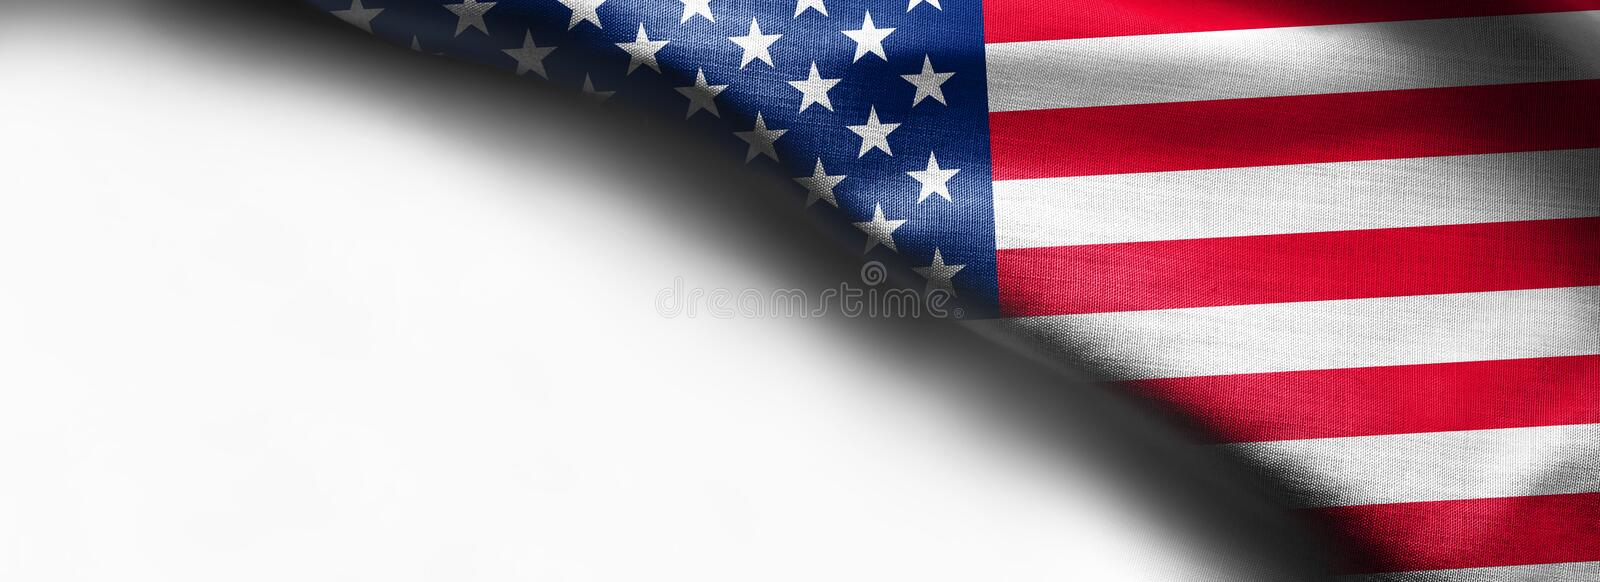 United States of American flag border isolated on white background royalty free stock images